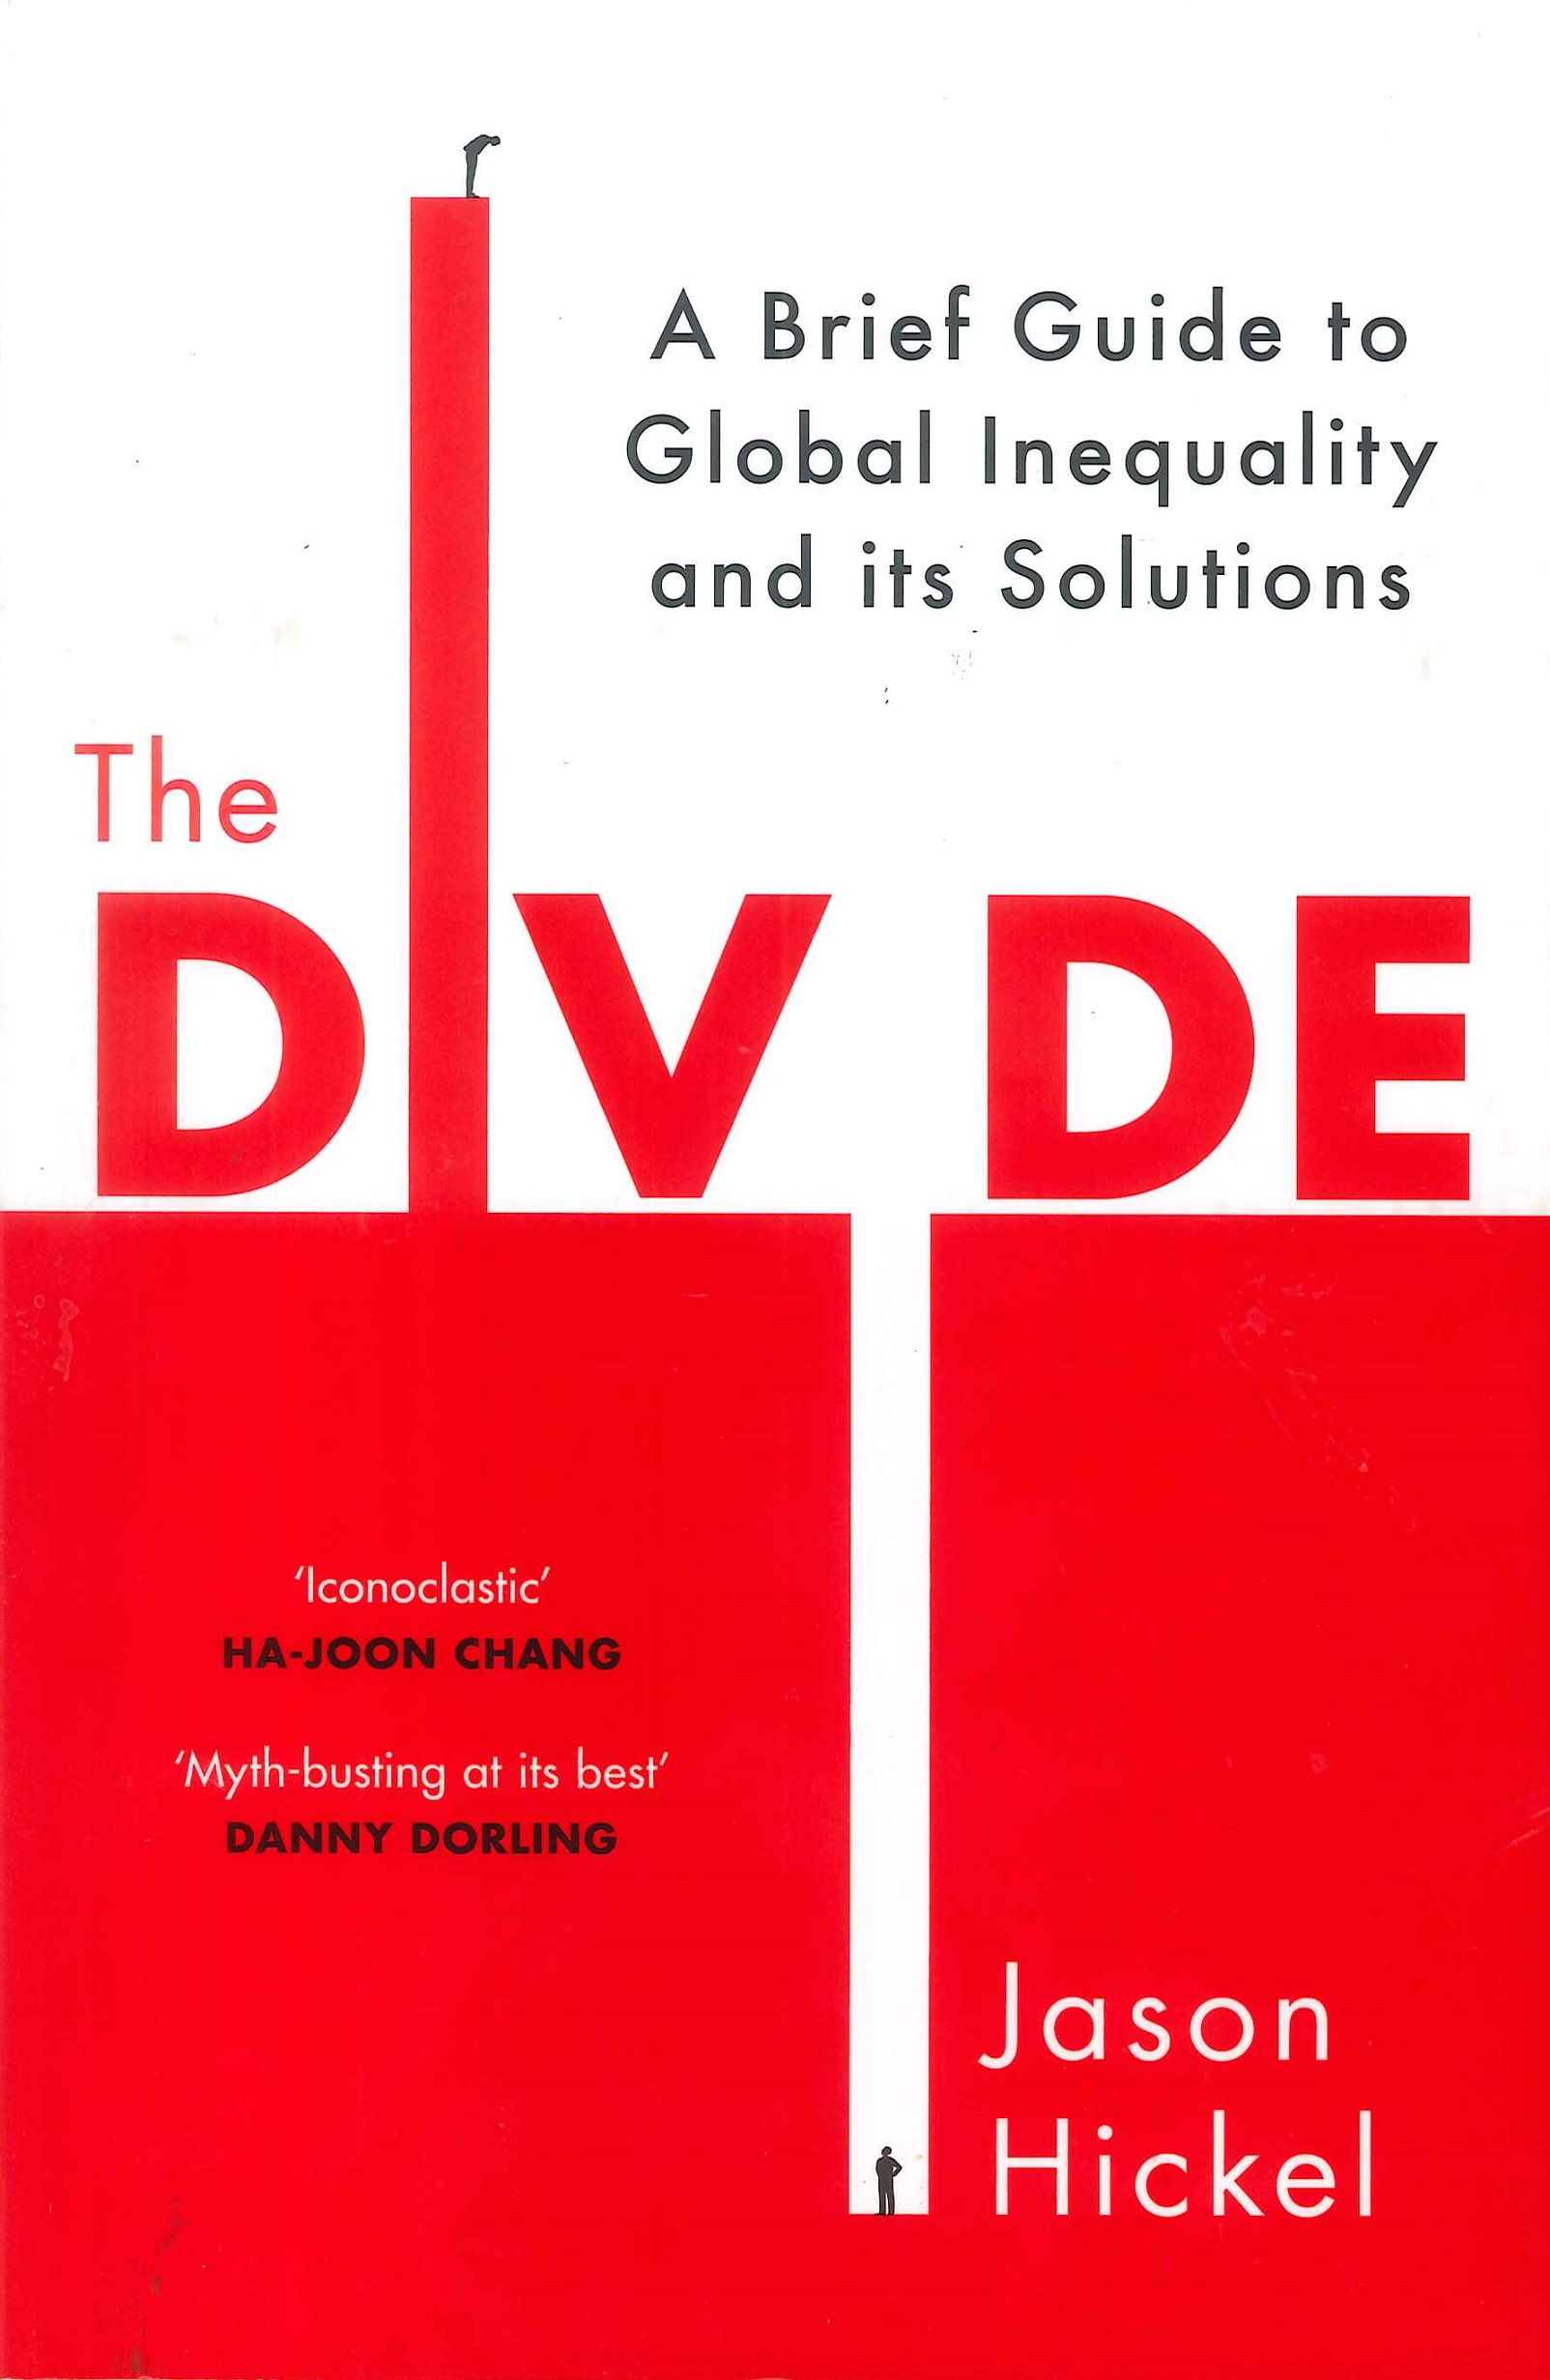 The divide:a brief guide to global inequality and its solutions